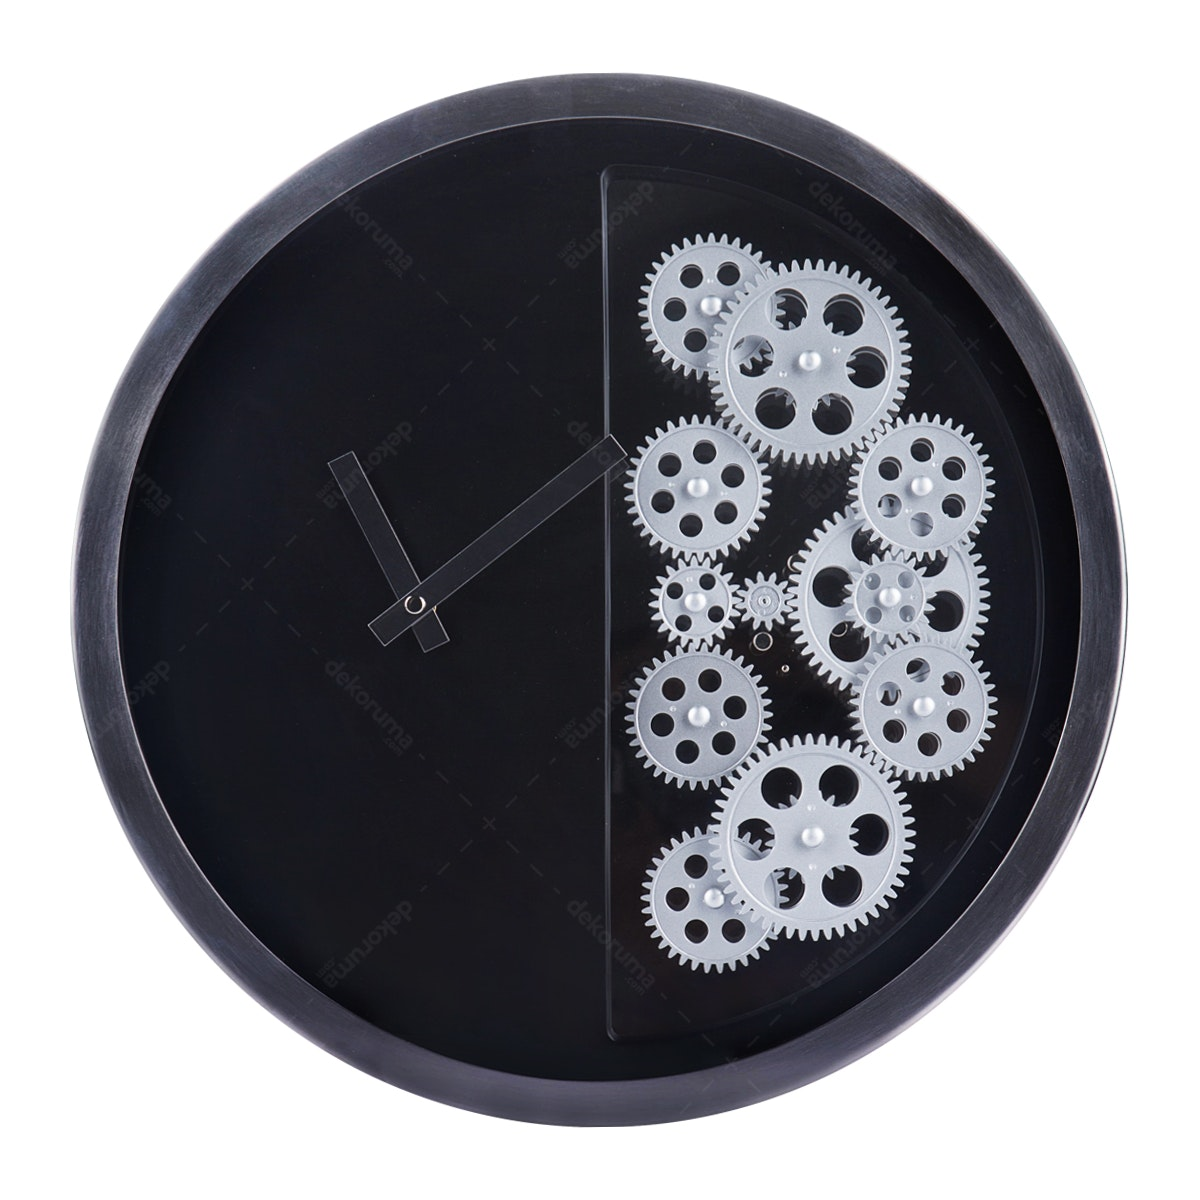 Gearclock Metal Wall Gear Clock HY-G055-B